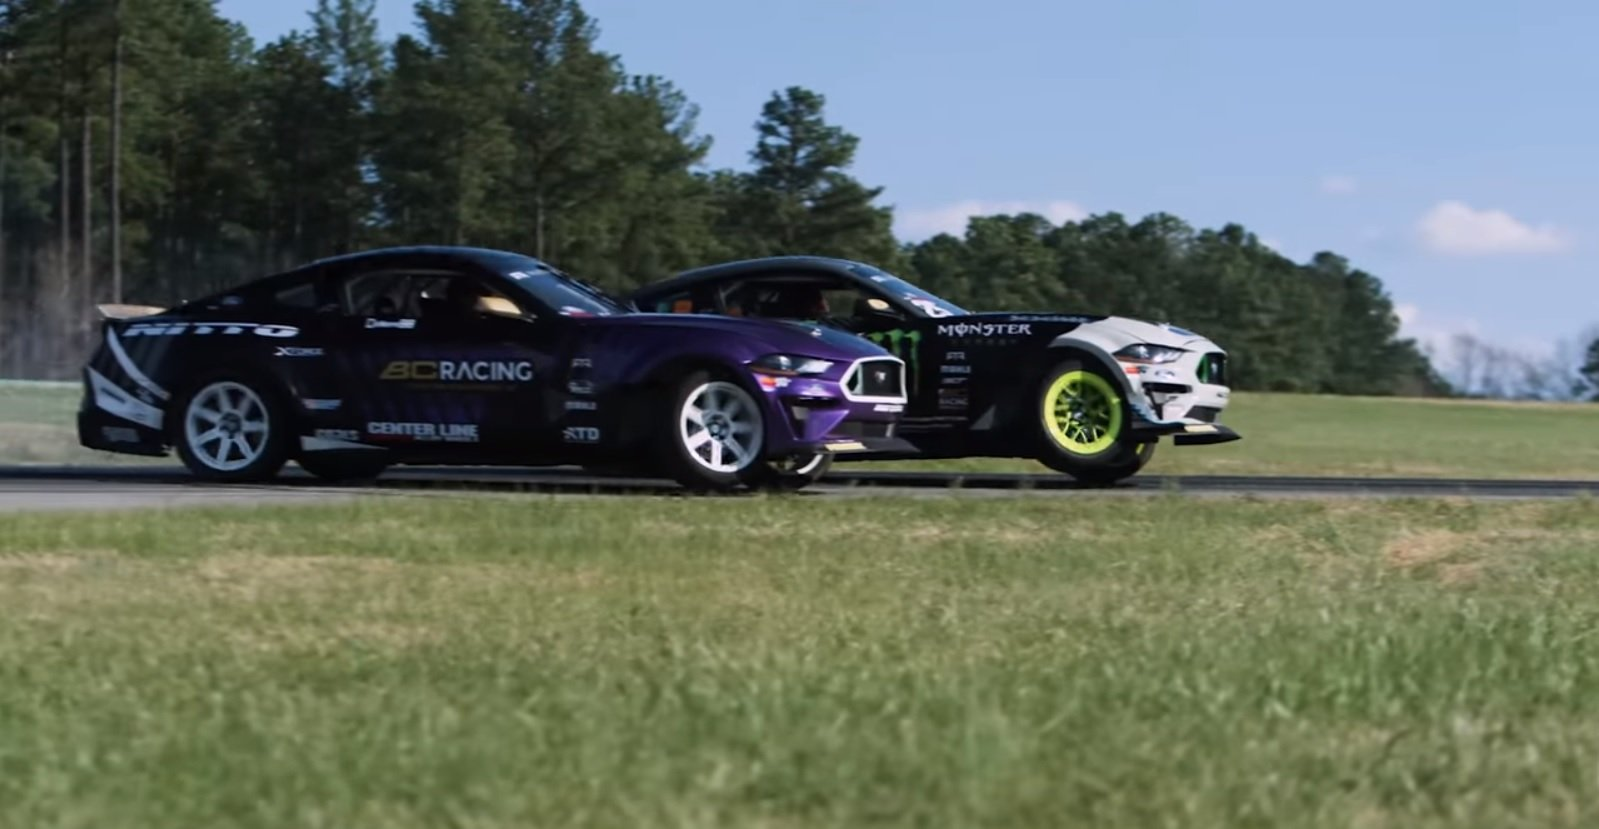 Watch: Ford Celebrates the New Formula Drift Season the Only Way it Knows How